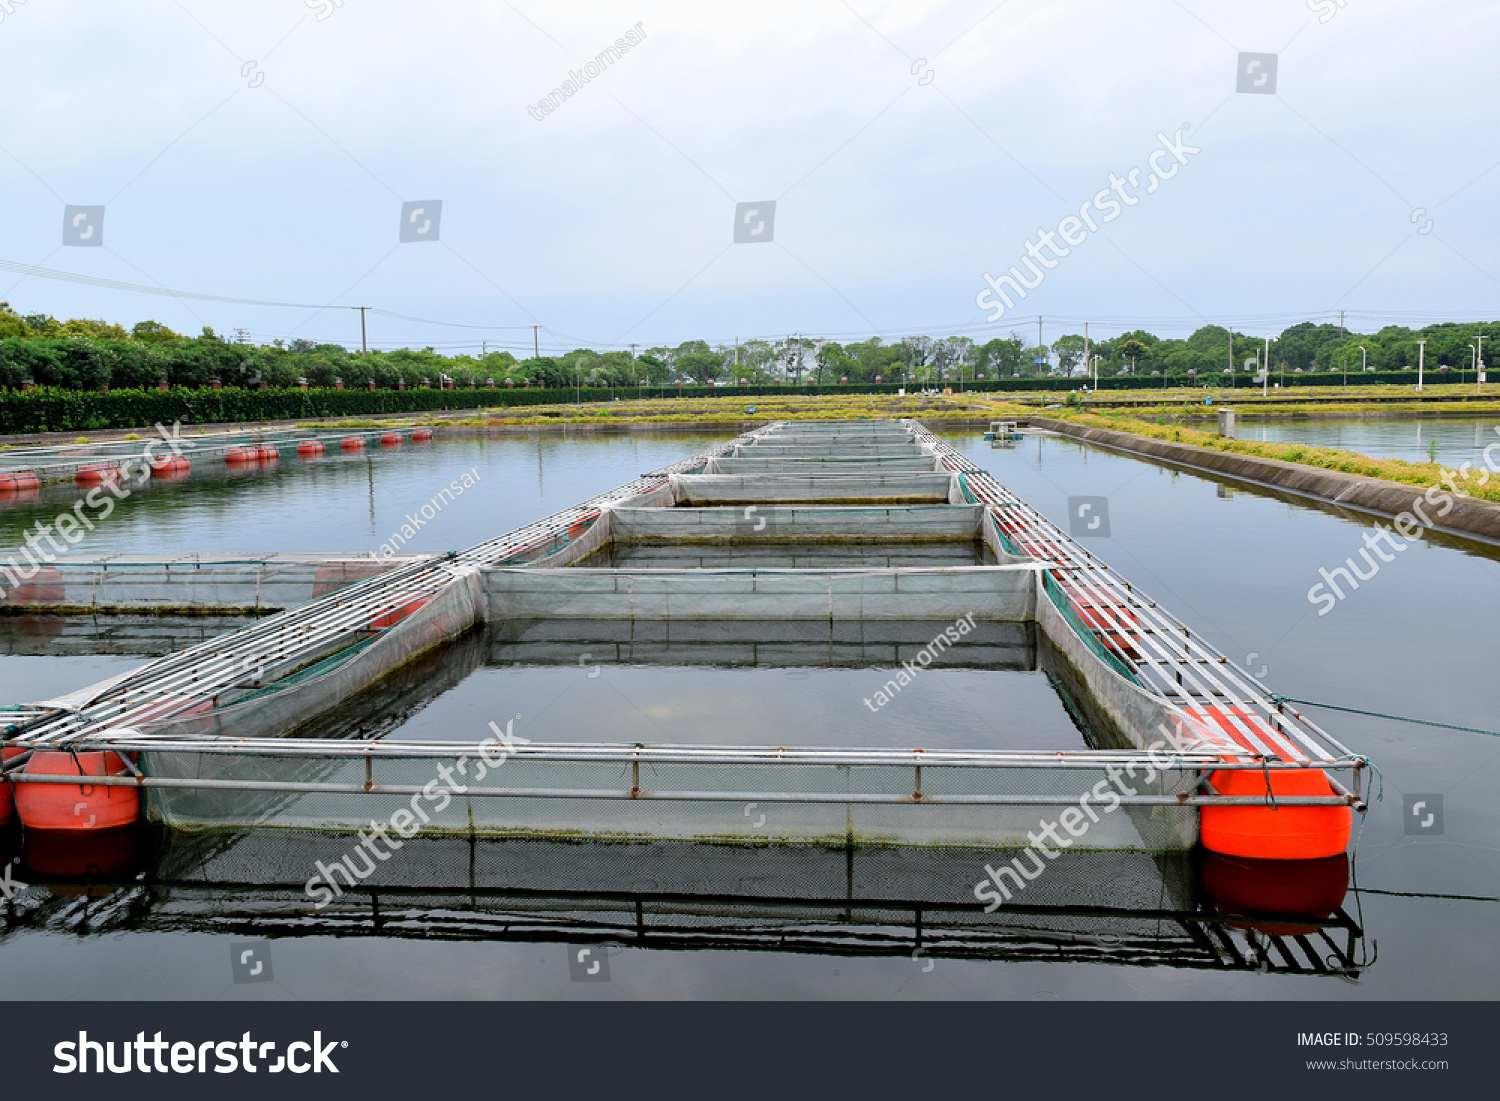 Floating cage pond commercial aquaculture farm stock photo for Floating fish pond